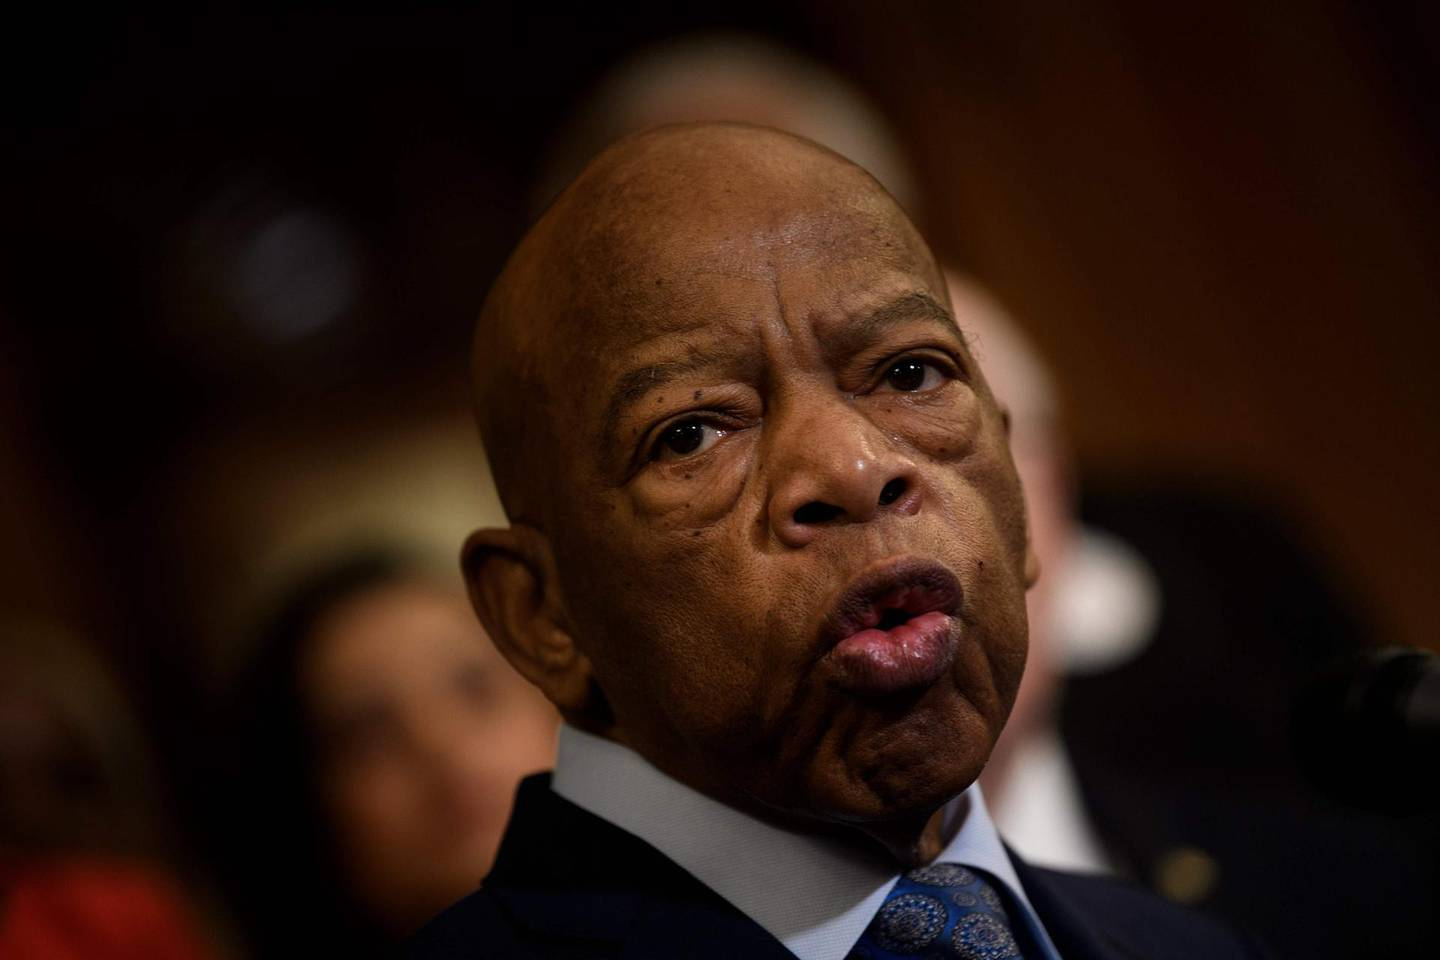 """(FILES) In this file photo taken on December 6, 2019 Rep. John Lewis (D-GA) speaks during a press conference about voting rights on Capitol Hill in Washington, DC. US President Donald Trump said he doesn't know how history will remember civil rights activist John Lewis, but that """"he chose not to come to my inauguration,"""" in an interview with US media. A longtime Democratic congressman, Lewis died on July 17, then received rare honors in Washington and was praised by key figures of both major parties for his life-long fight for equality. """"How do you think history will remember John Lewis?"""" Jonathan Swan of the Axios media outlet asked Trump in the interview aired on August 3, 2020.""""I don't know, I really don't know,"""" the president answered.""""I don't know John Lewis, he chose not to come to my inauguration.""""  / AFP / Brendan Smialowski"""